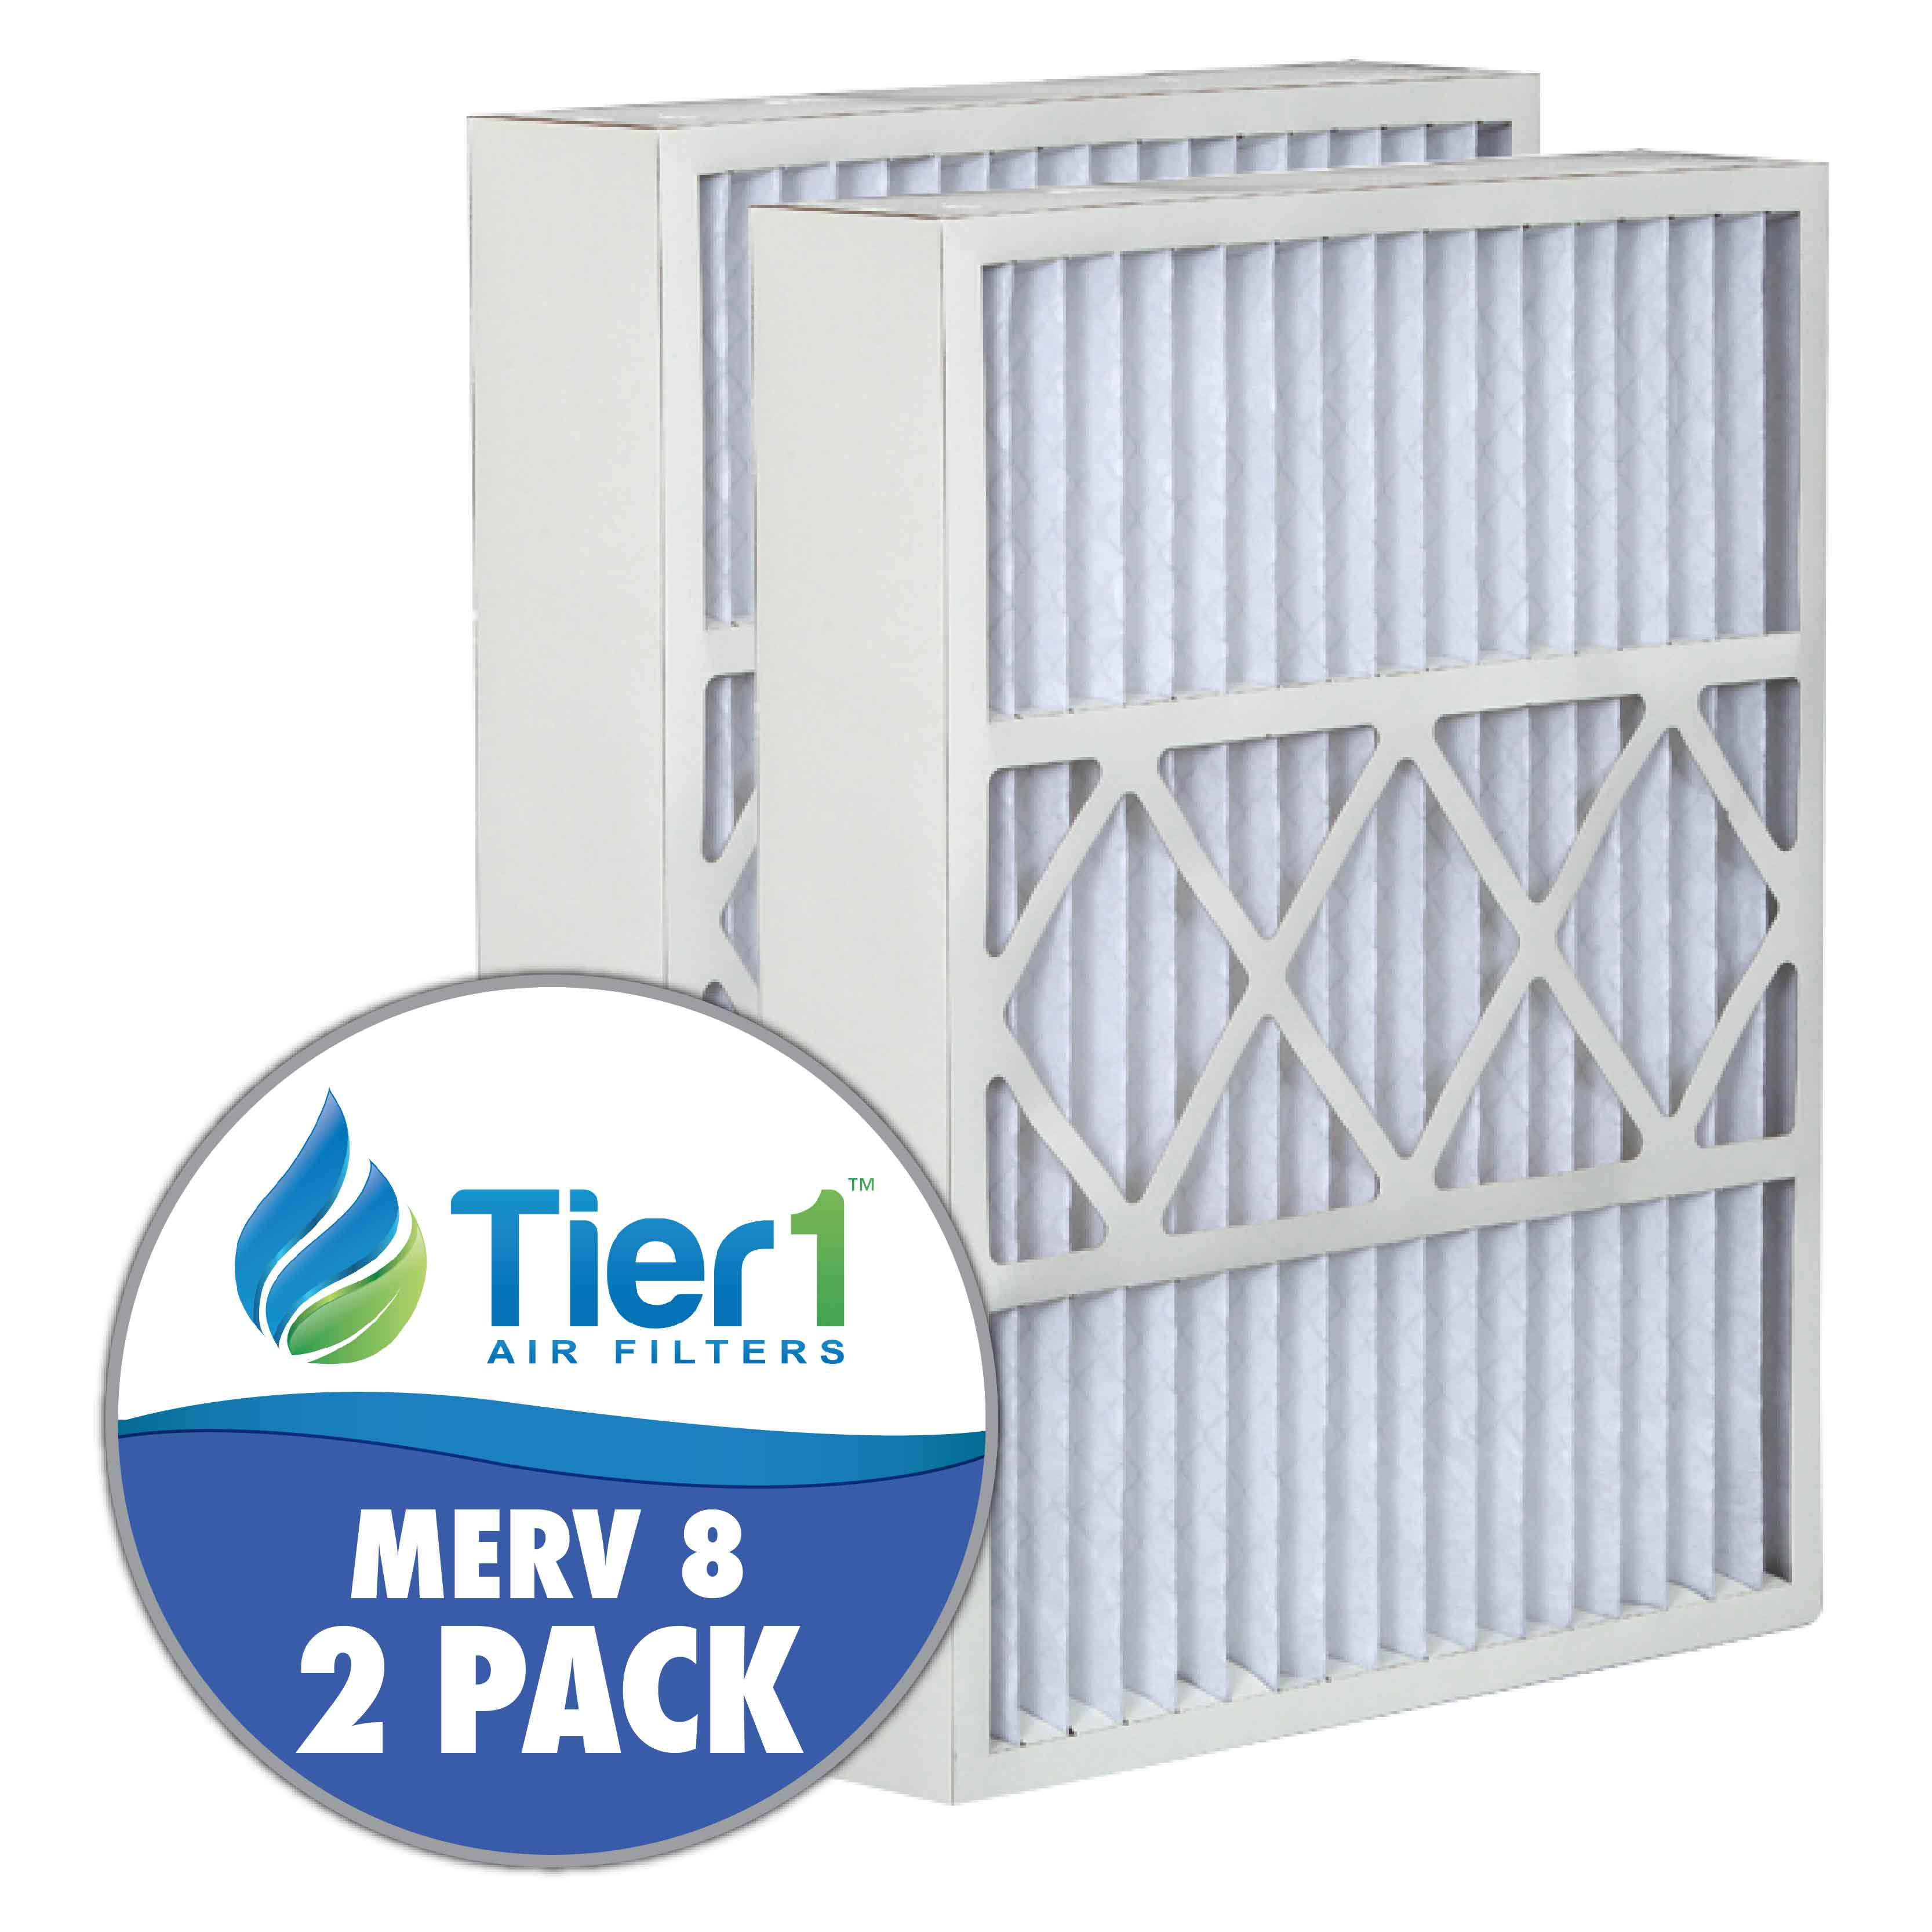 FC100A1003 & FC200E1003 Honeywell Air Filter: Comparable Replacement by Tier1 (16 x 20 x 5, MERV 8) TIER1-DPFW16X20X5